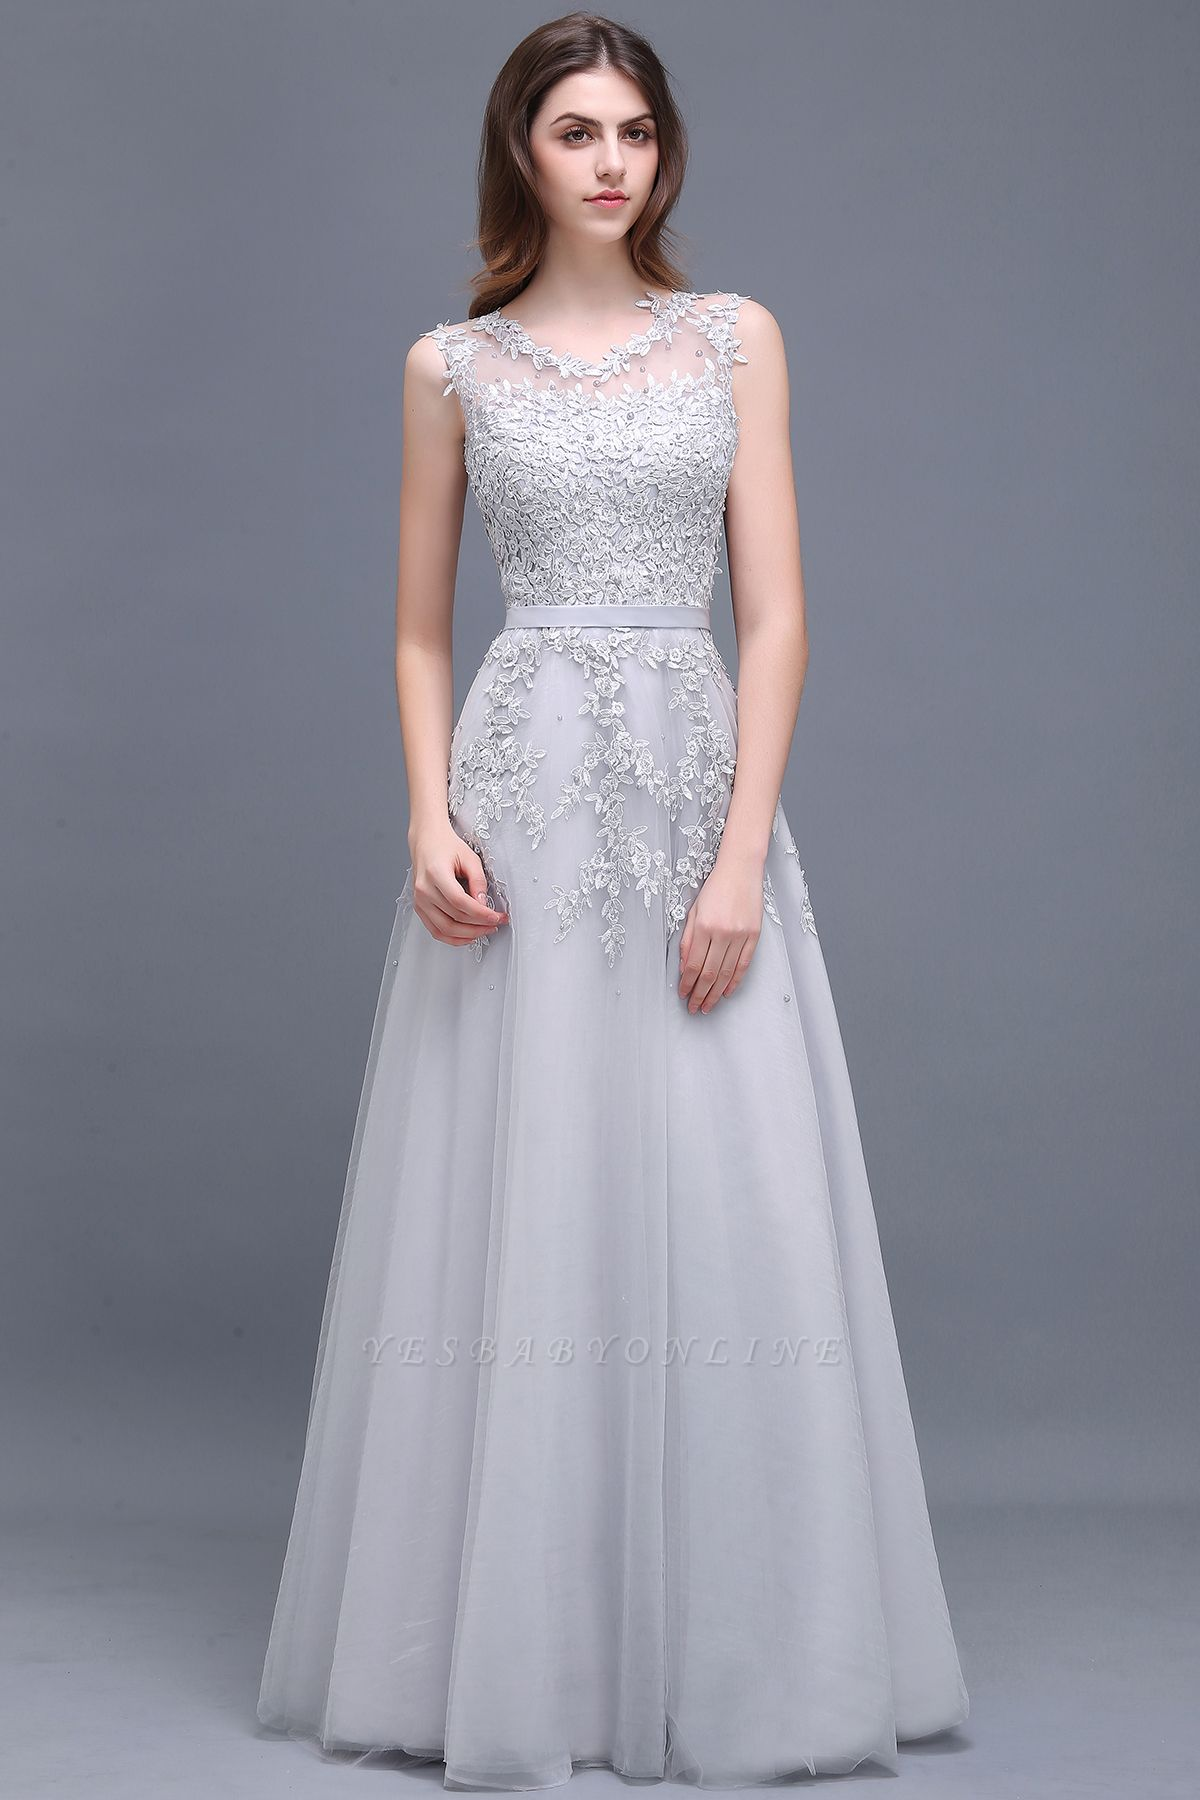 Cheap A-line Floor-length Tulle Prom Dress with Appliques in Stock